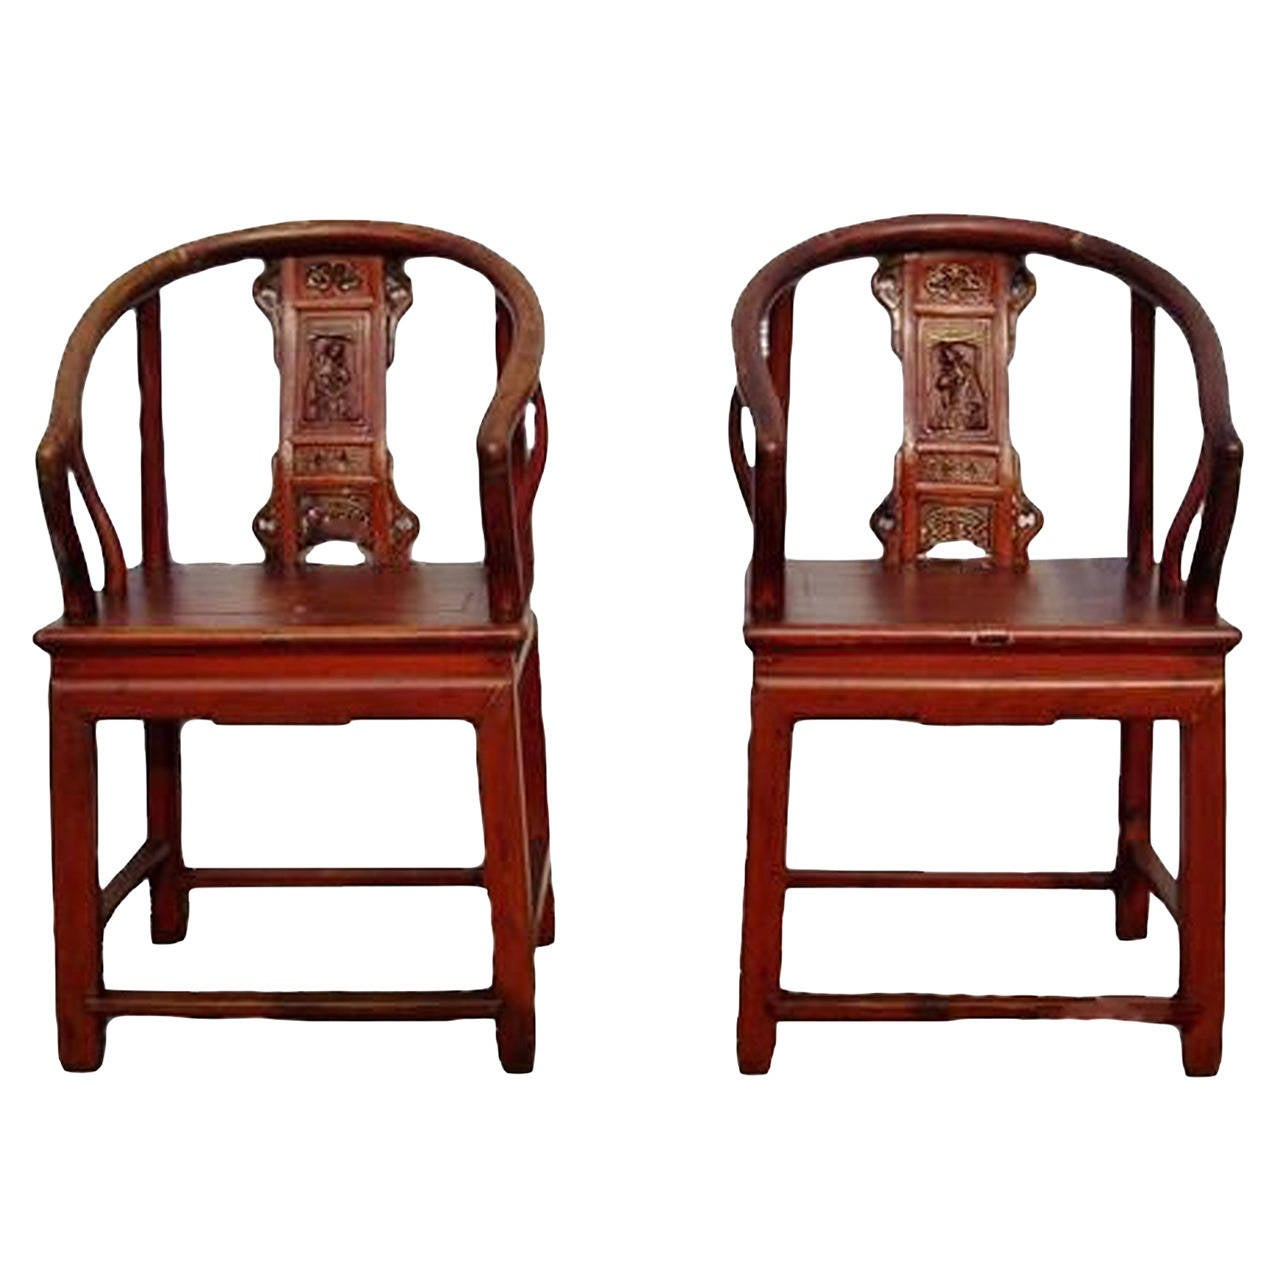 Antique Chinese Chairs Horseshoe Pair At 1stdibs